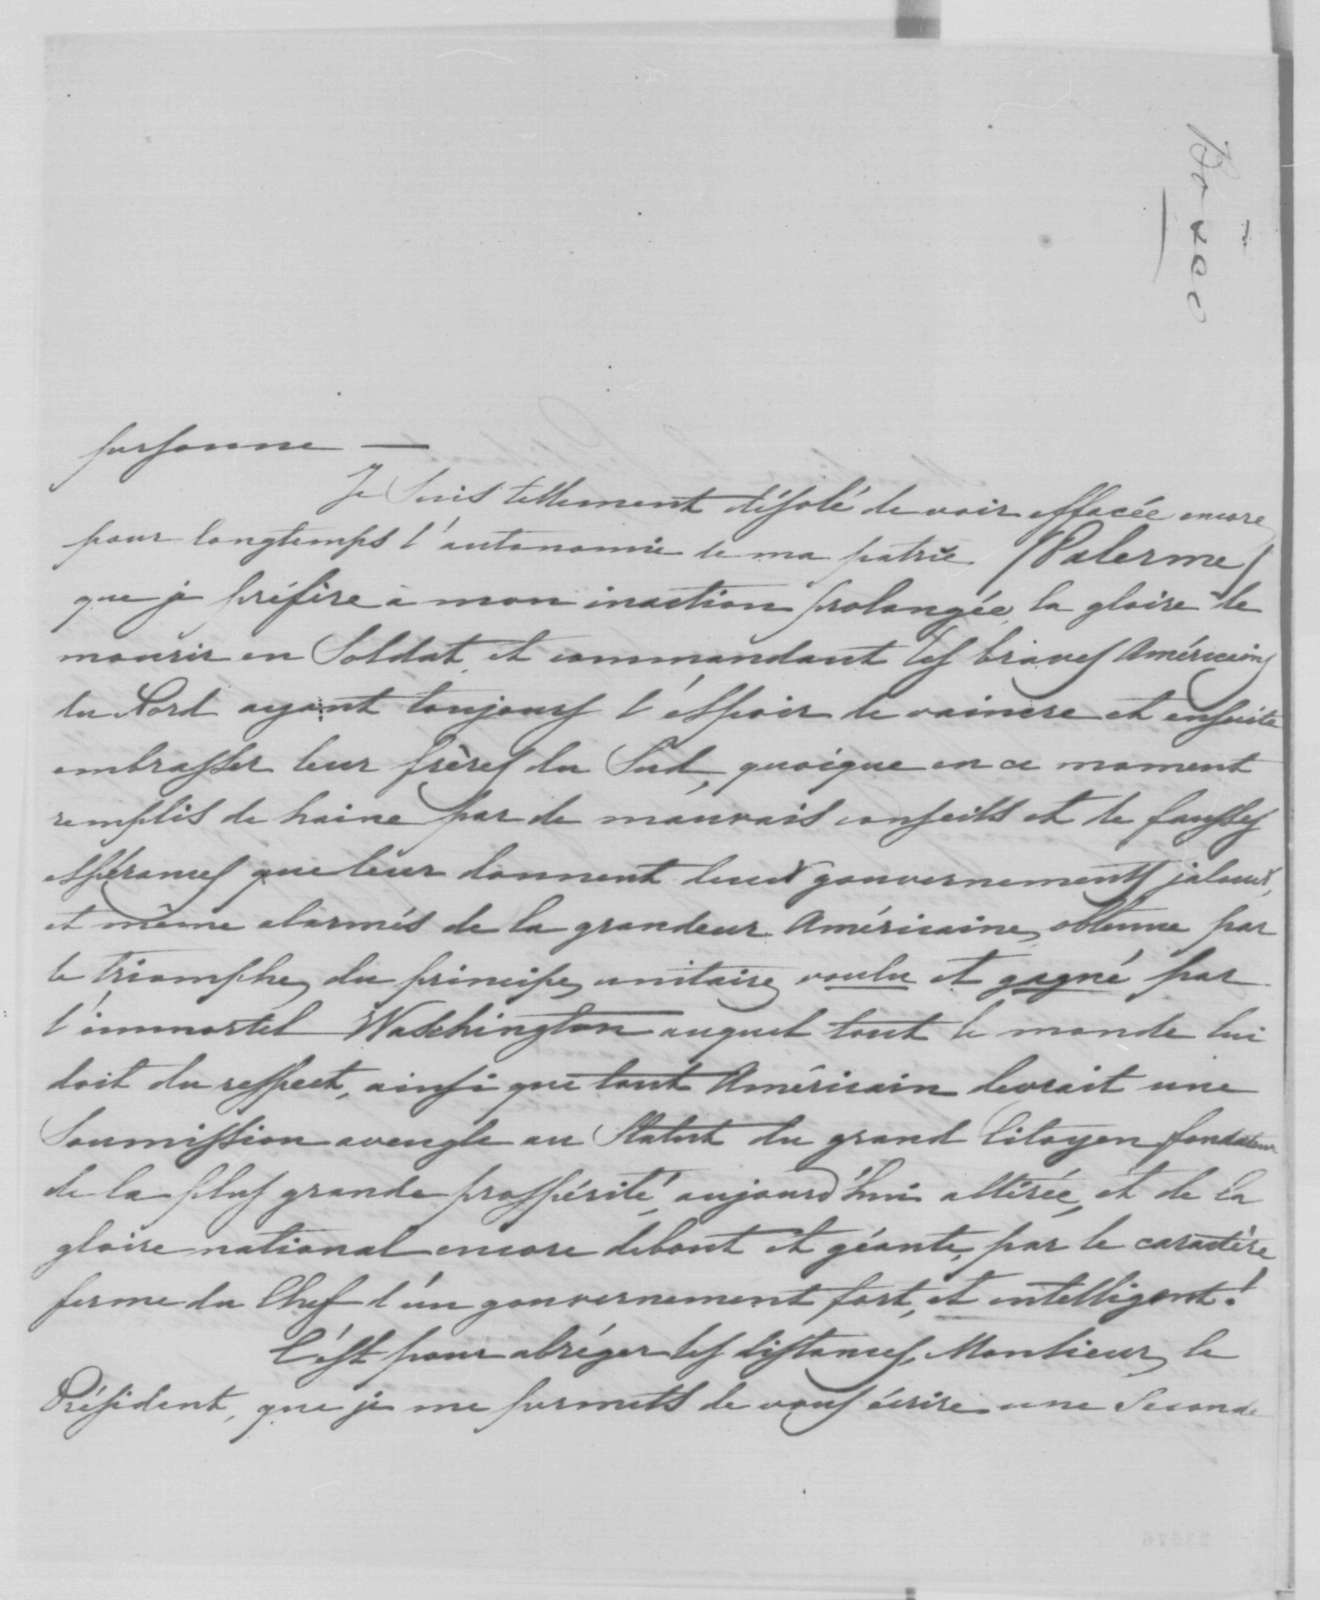 Ferdinand Beneventano de Bosco to Abraham Lincoln, Wednesday, May 20, 1863  (In French)